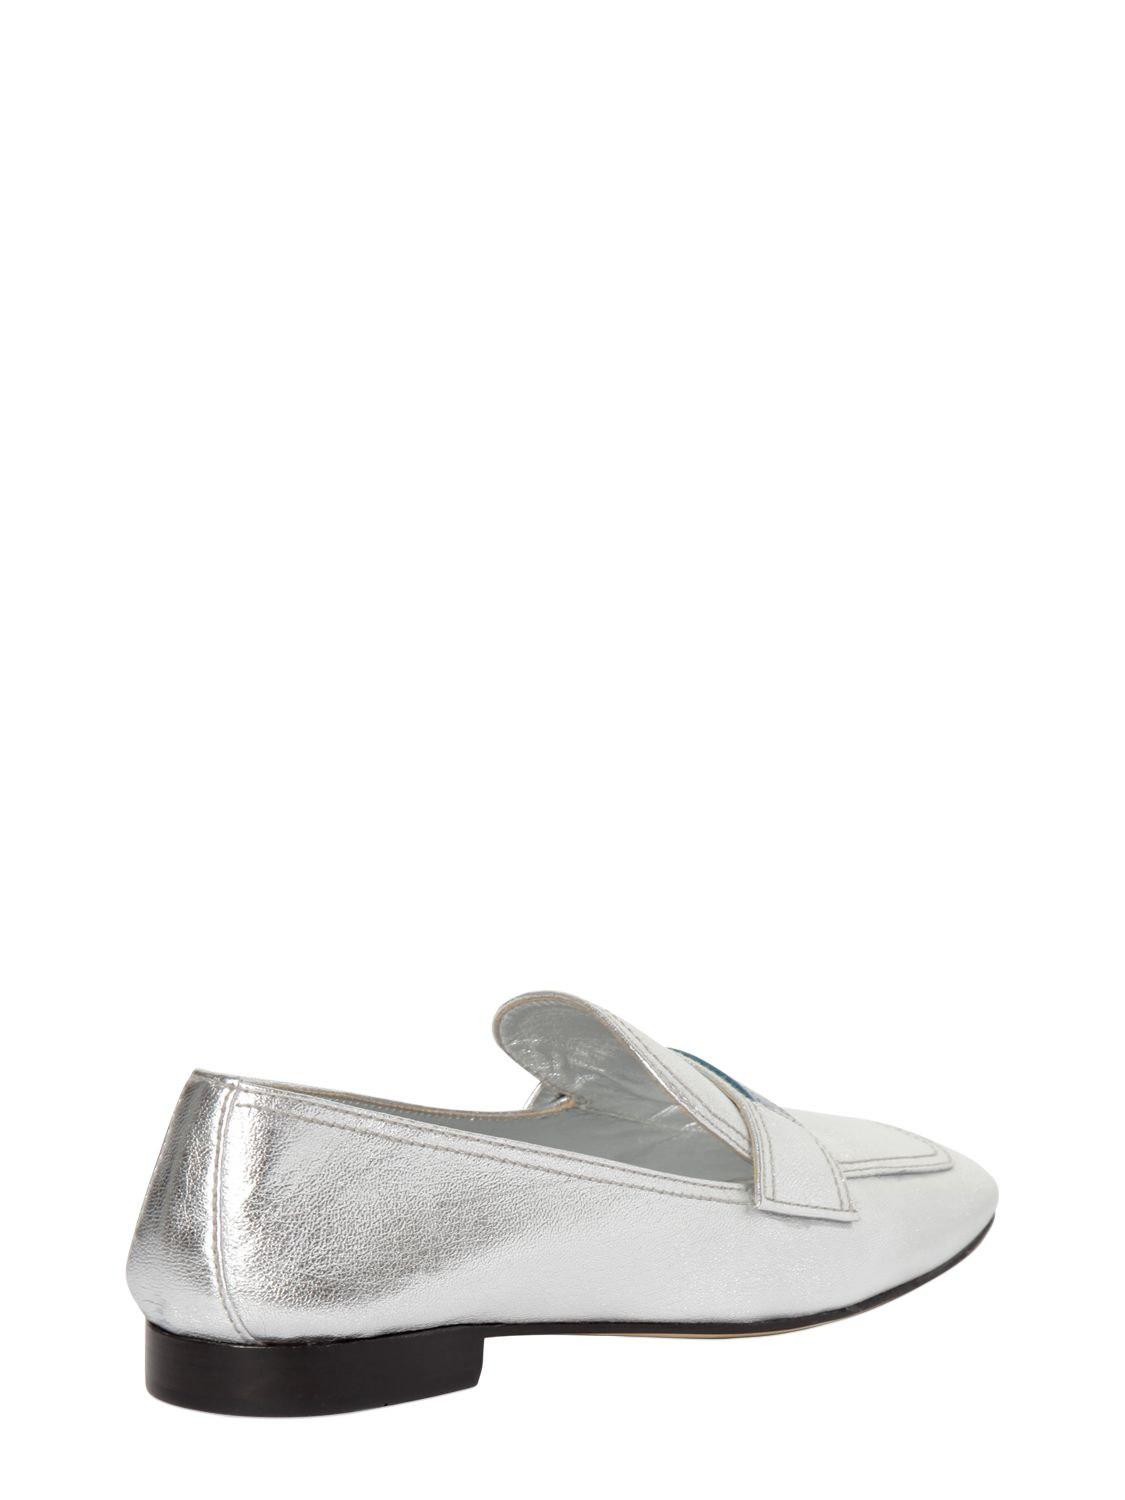 Cheap Latest Silver logo leather loafers - Metallic Prada Pick A Best Online Outlet Latest nShU8Px4